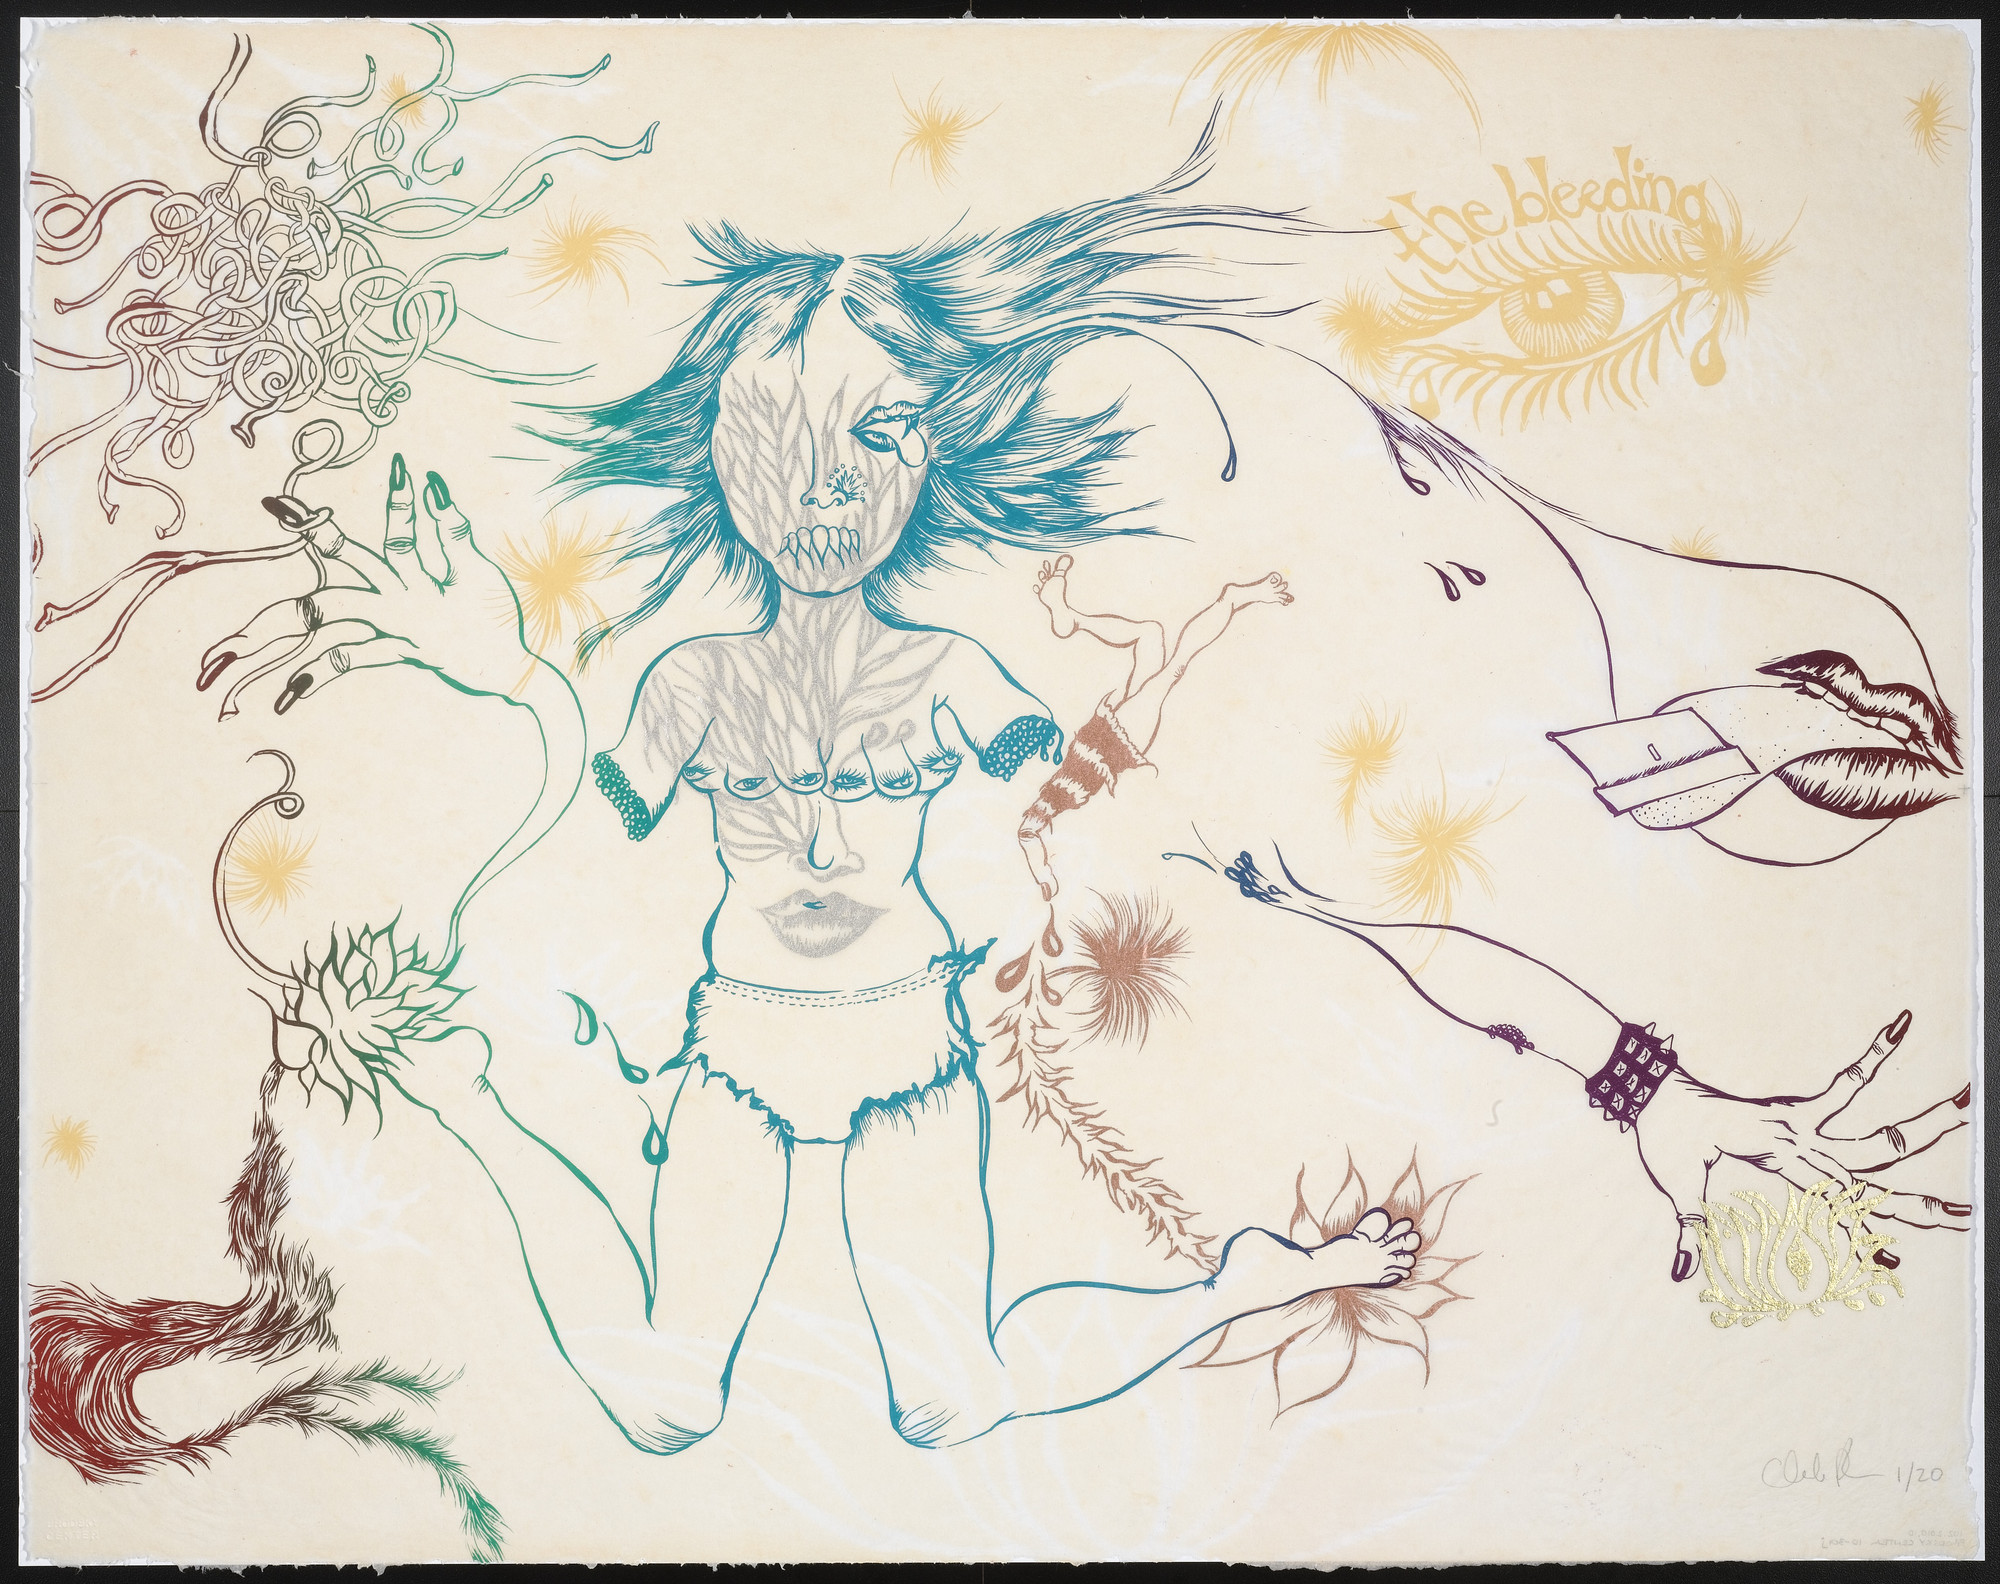 Chitra Ganesh. Untitled from Delicate Line (Corpse she was holding): Her head in the flames?. 2009